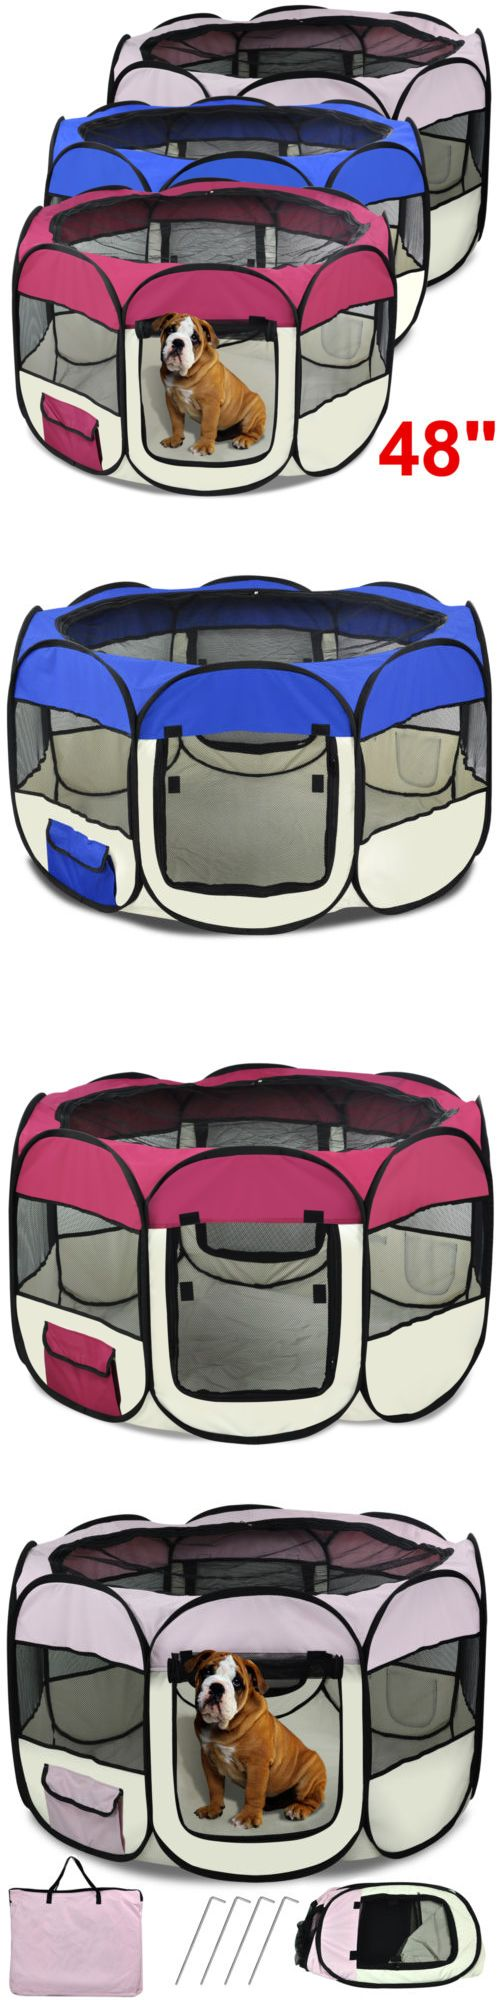 Fences and Exercise Pens 20748: 48 Pet Dog Cat Playpen Tent Portable Exercise Fence Kennel Cage Crate 3 Colors -> BUY IT NOW ONLY: $31.99 on eBay!